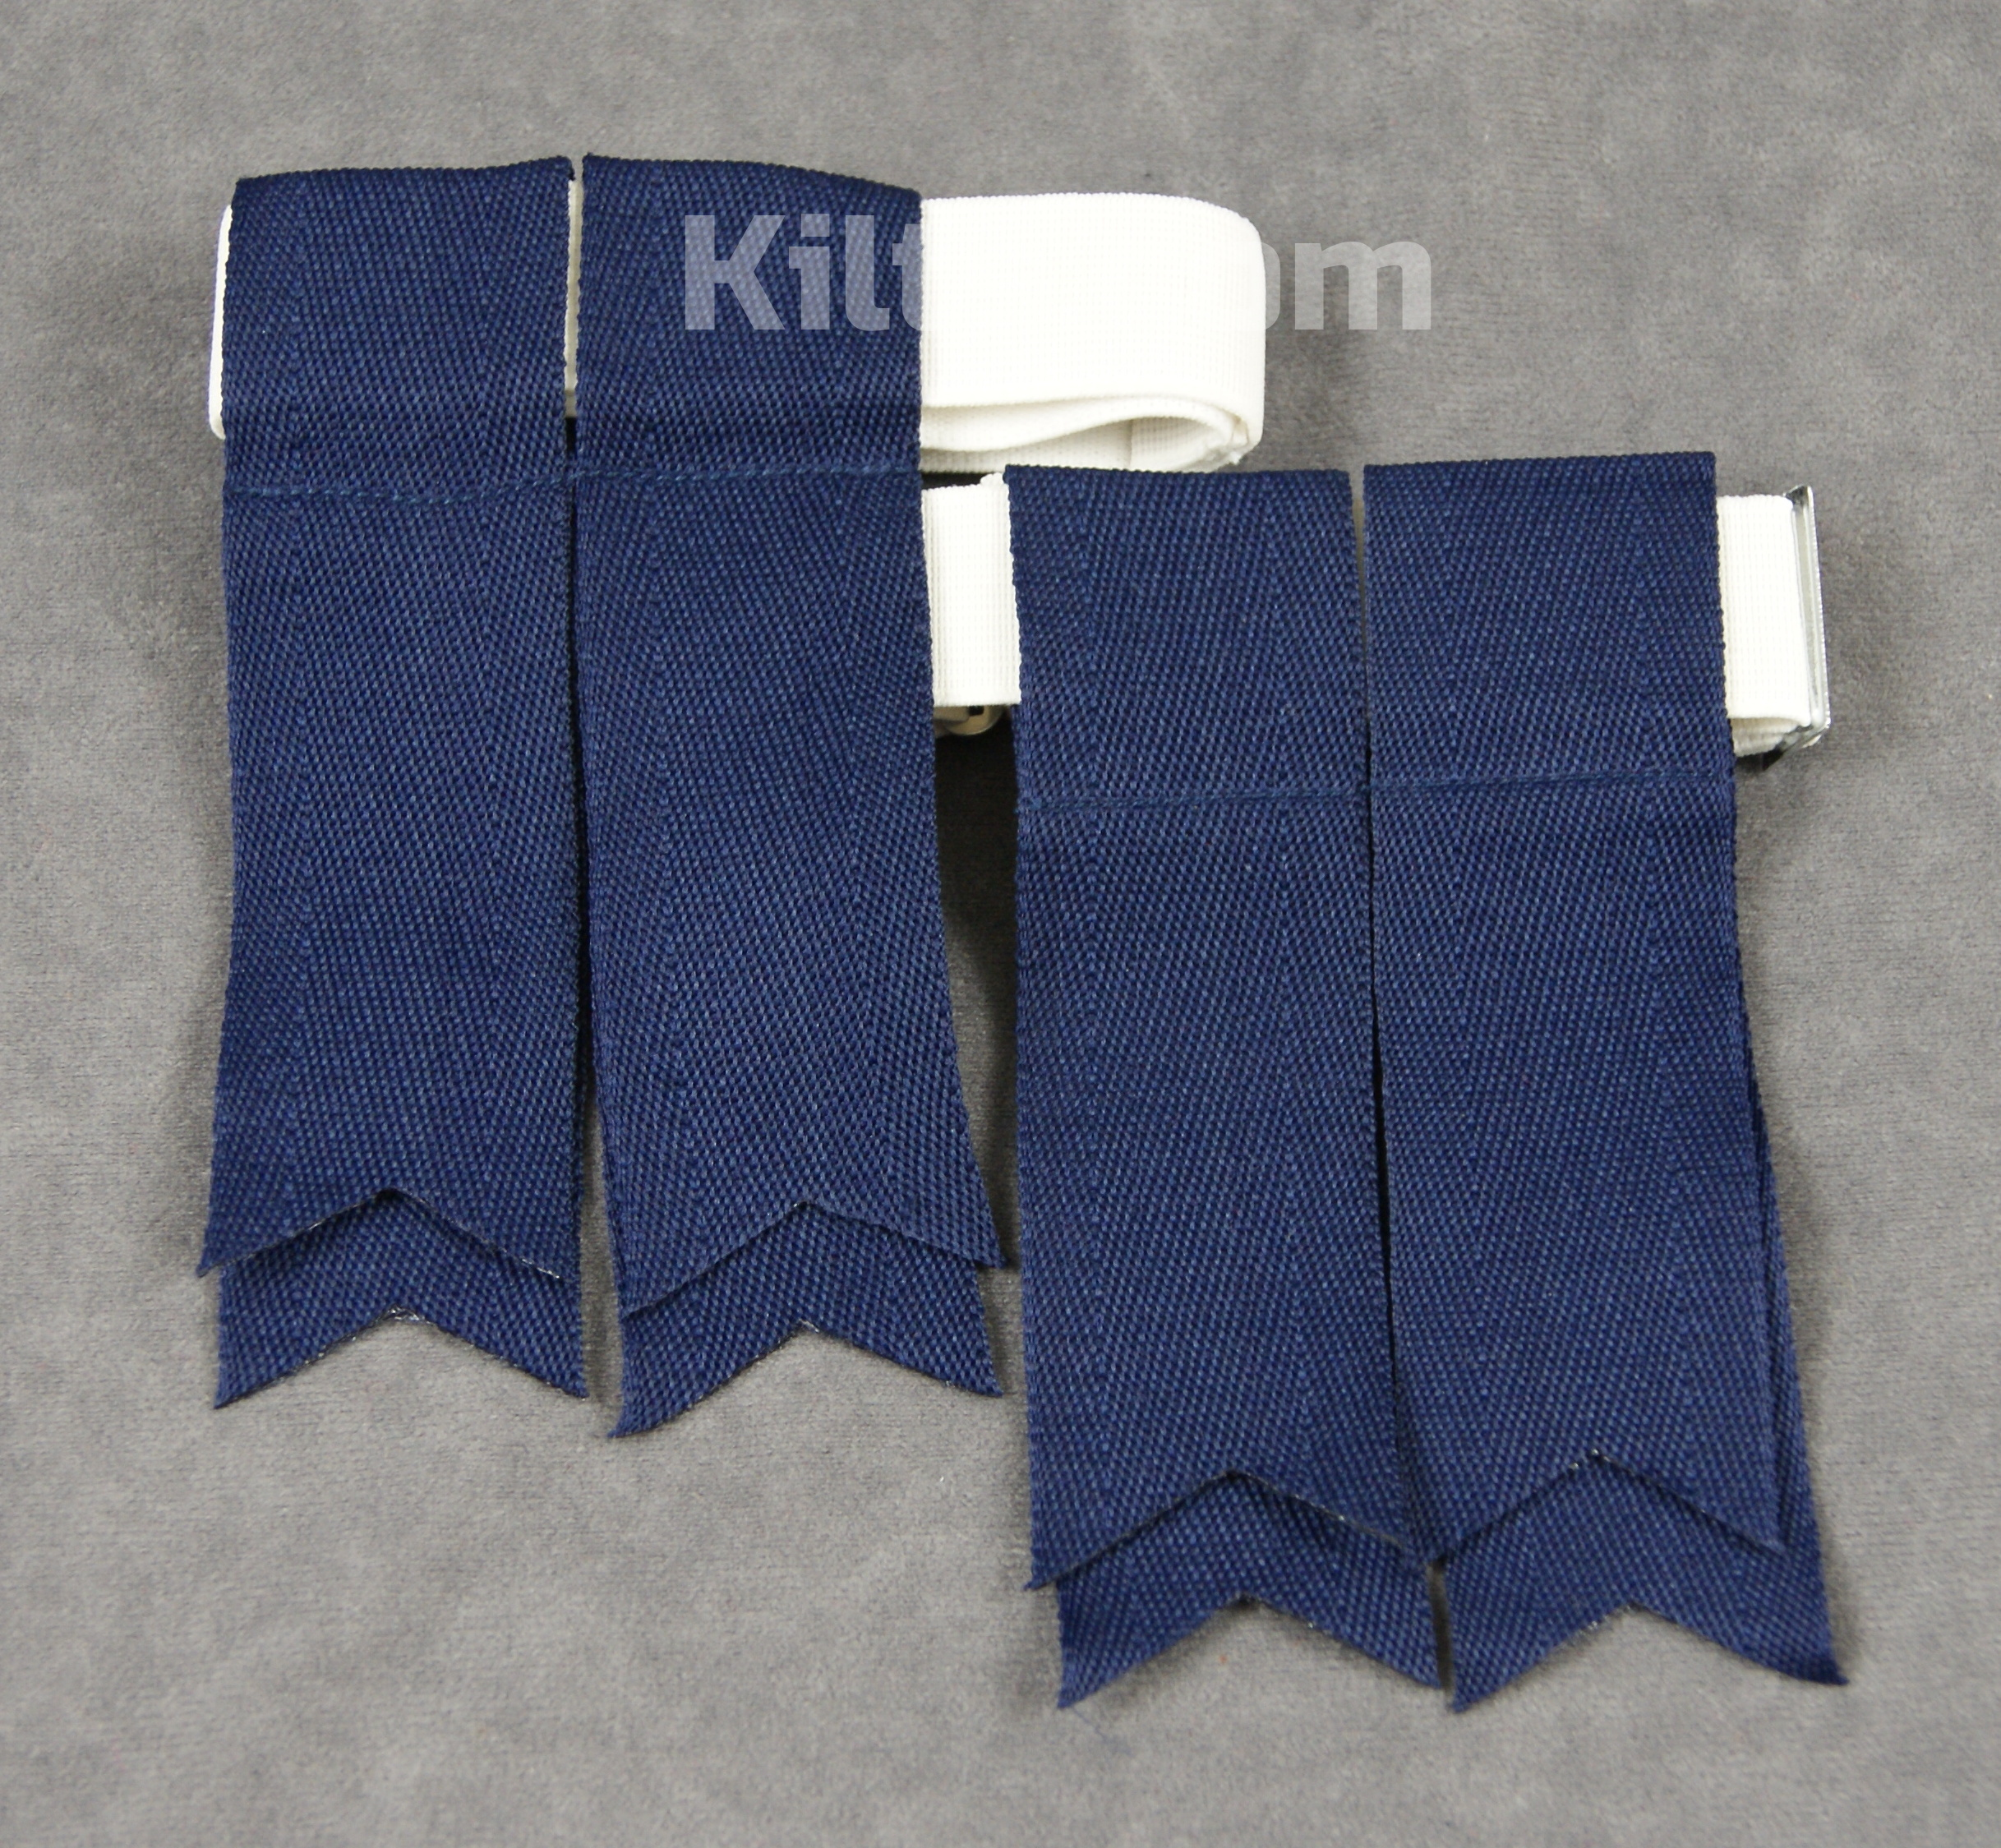 Check out our Premium Flashes for Kilt Socks for Sale in Navy.